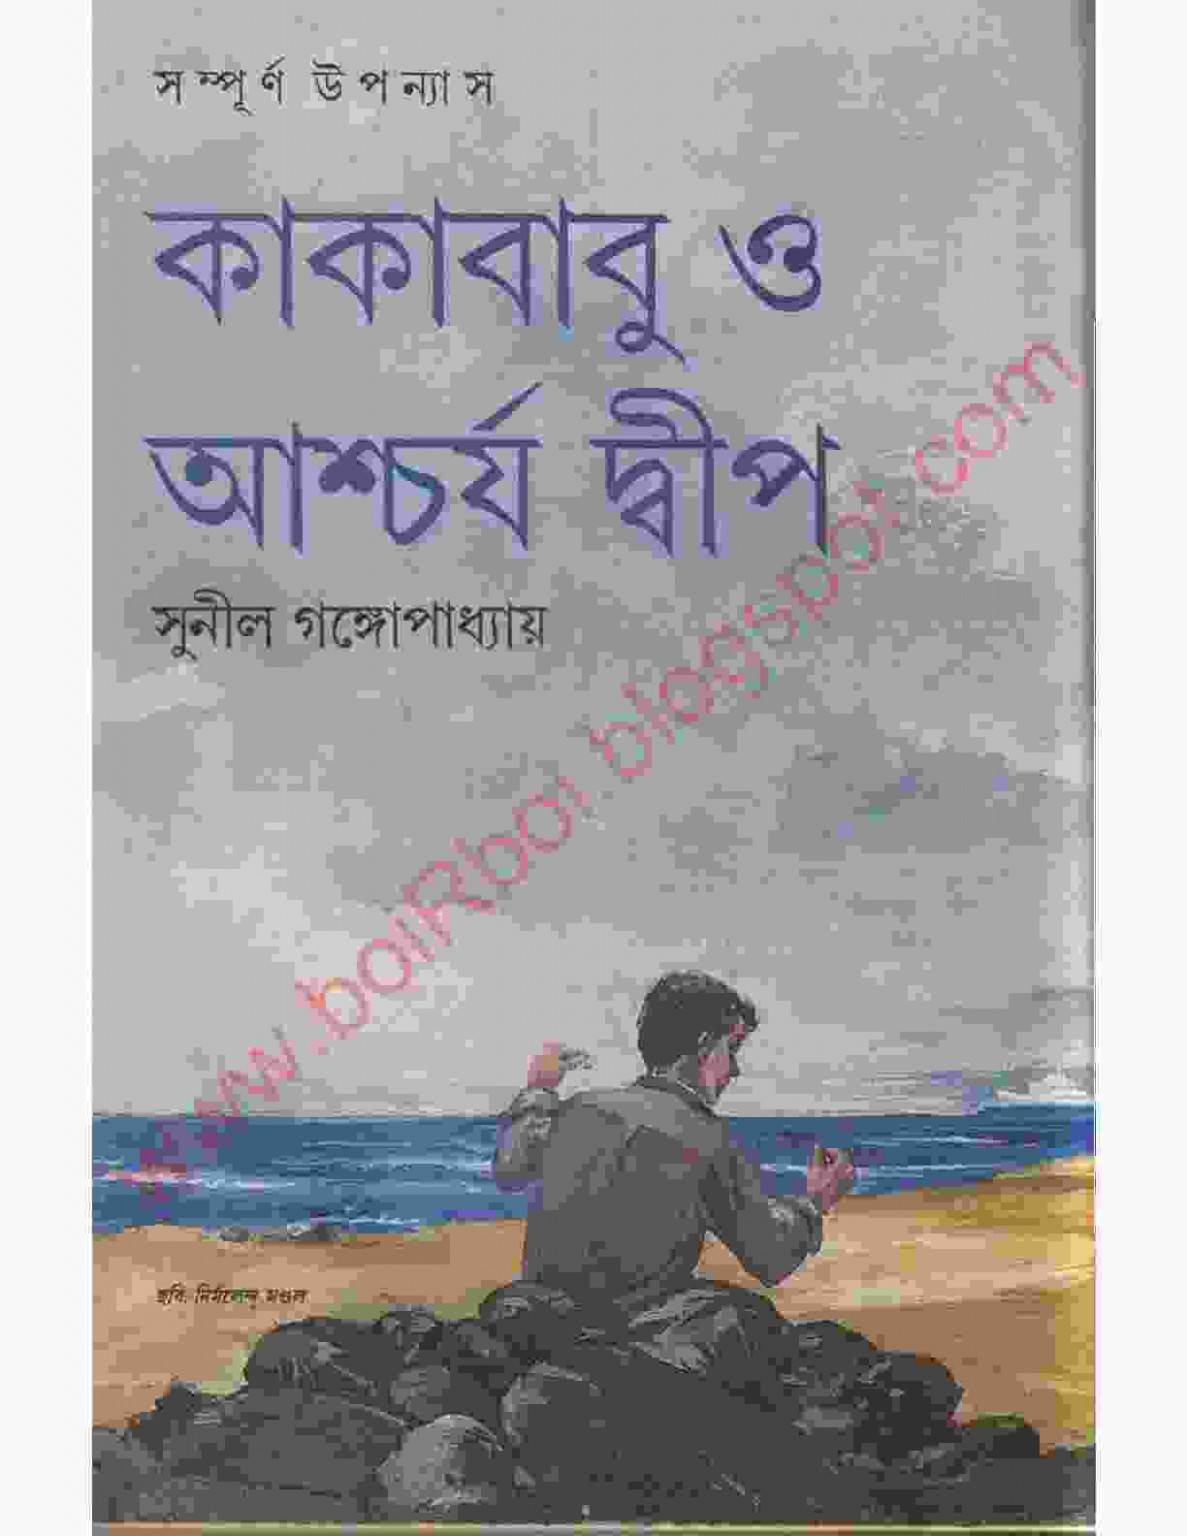 Bangla recipe book pdf free download, delicious and healthy ...